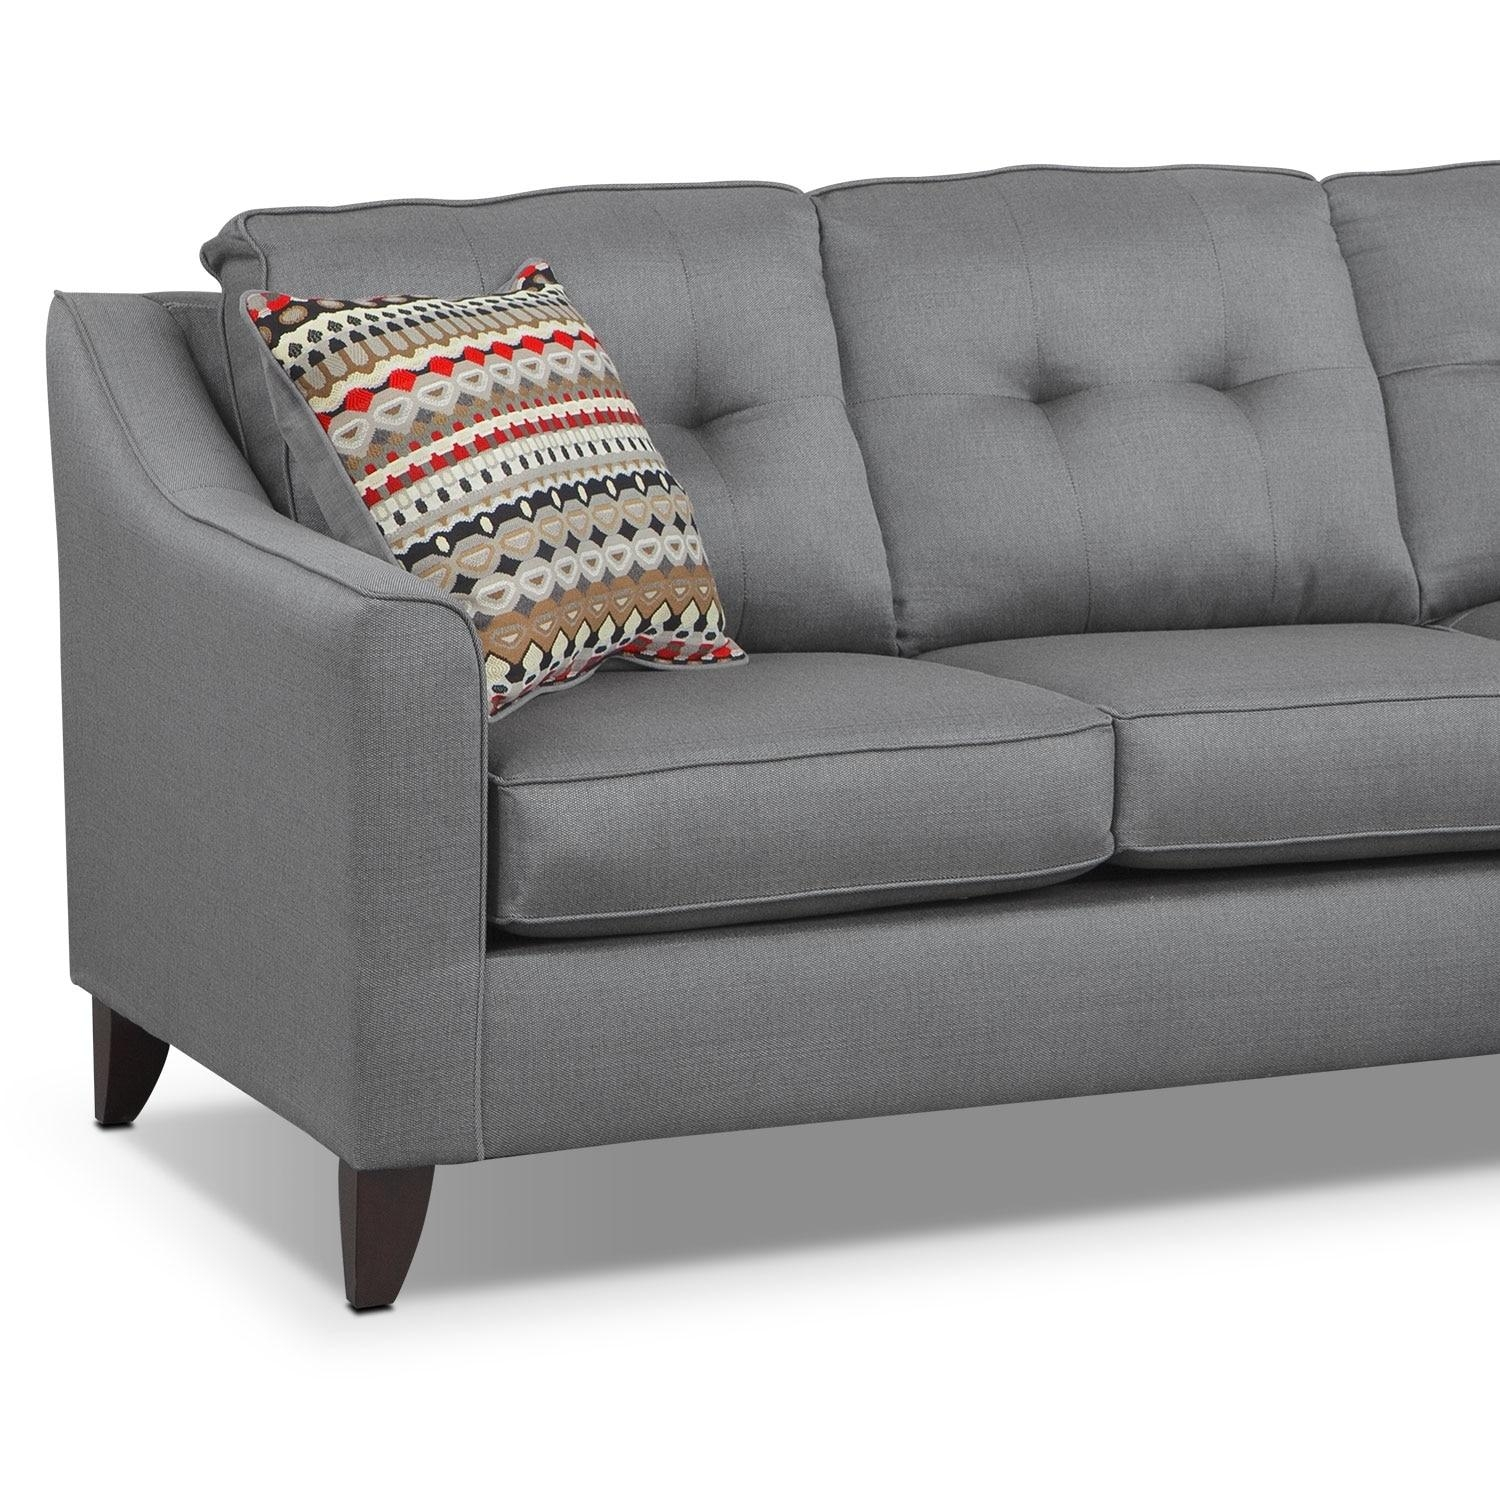 Marco Chaise Sofa – Gray | American Signature Furniture Intended For Chaise Sofas (View 6 of 20)